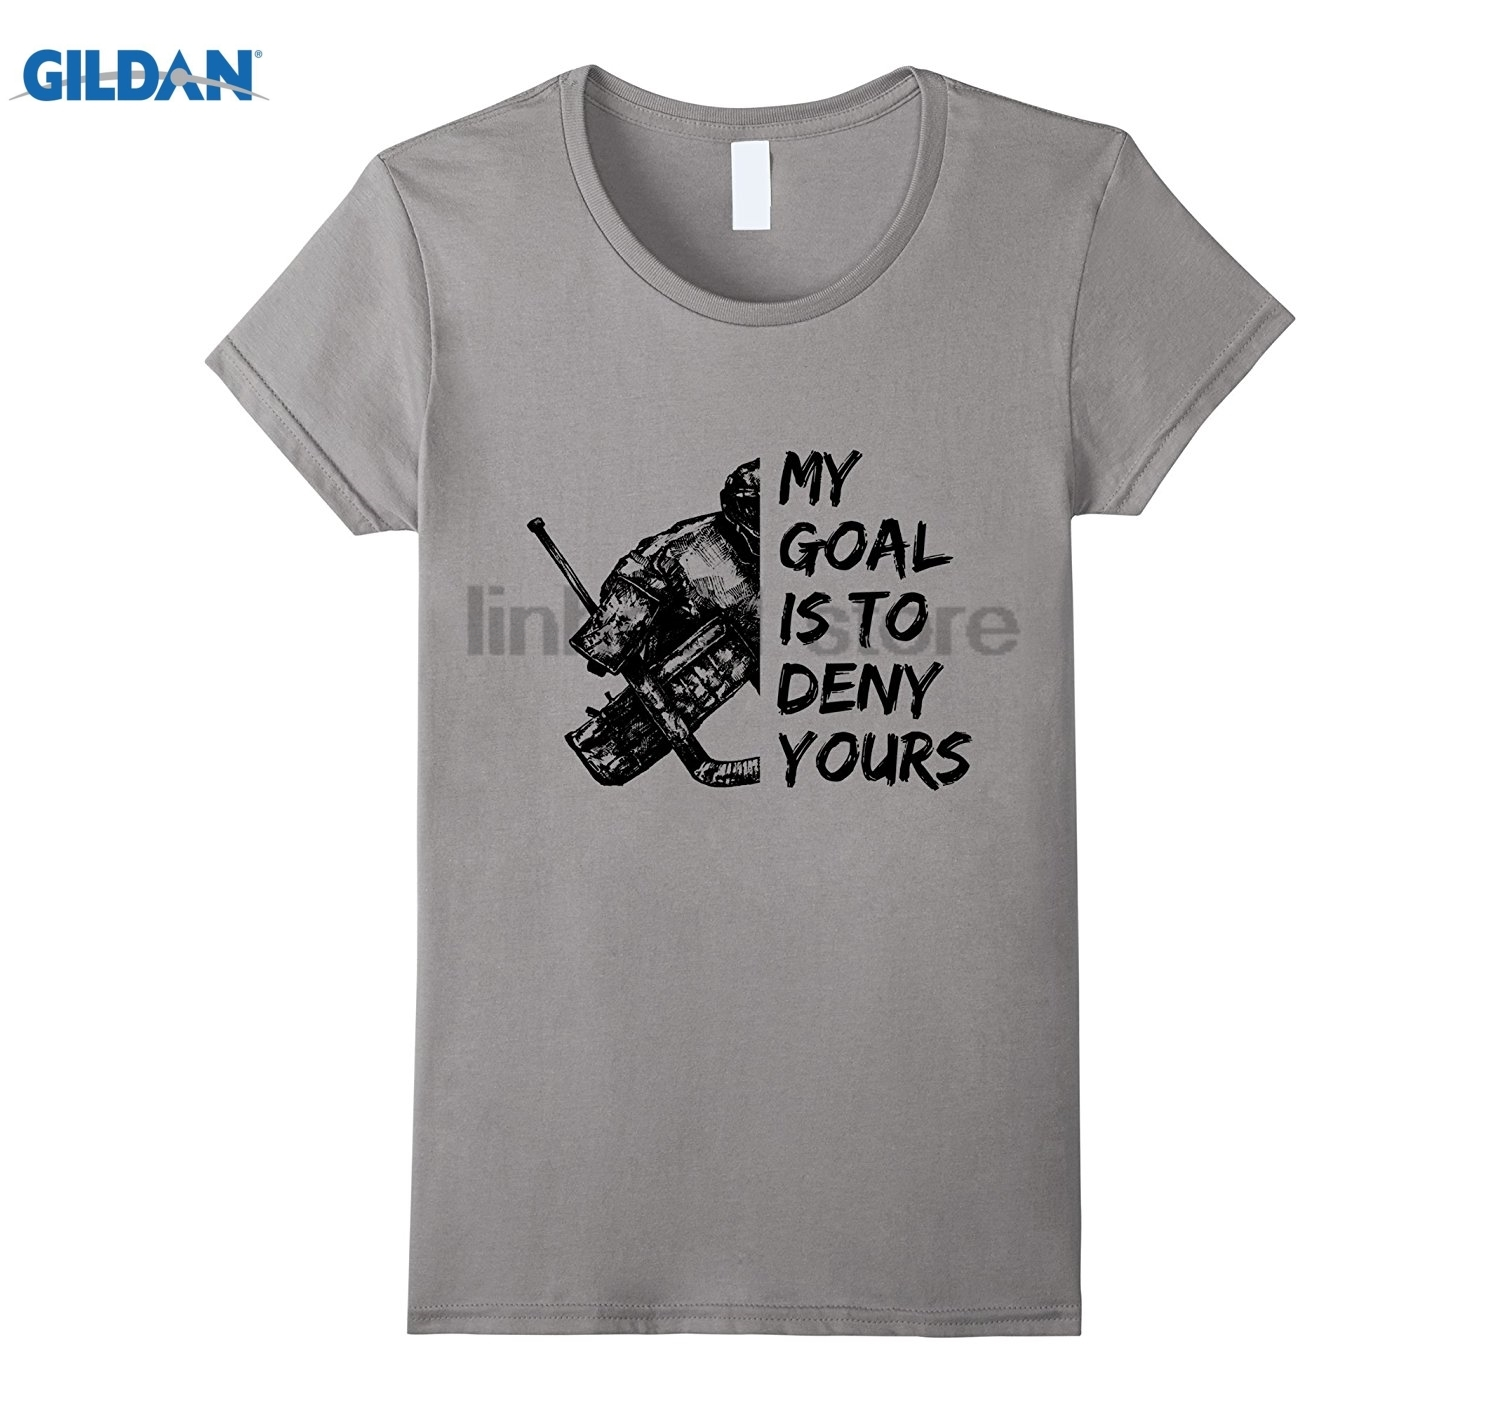 GILDAN MY GOAL IS TO DENY YOURS T-SHIRT MOM T-SHIRT Hot Womens T-shirt glasses Womens T-shirt